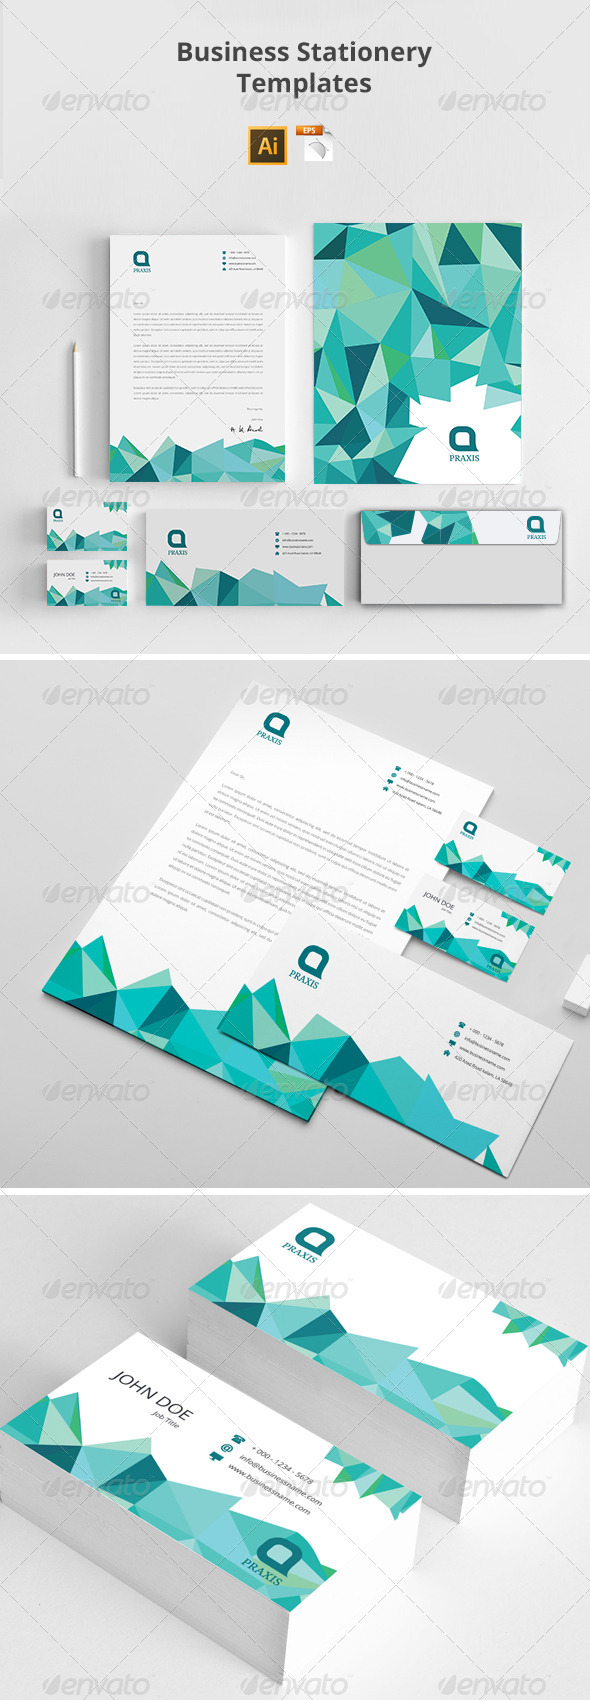 GraphicRiver Business Stationery Templates 8098115